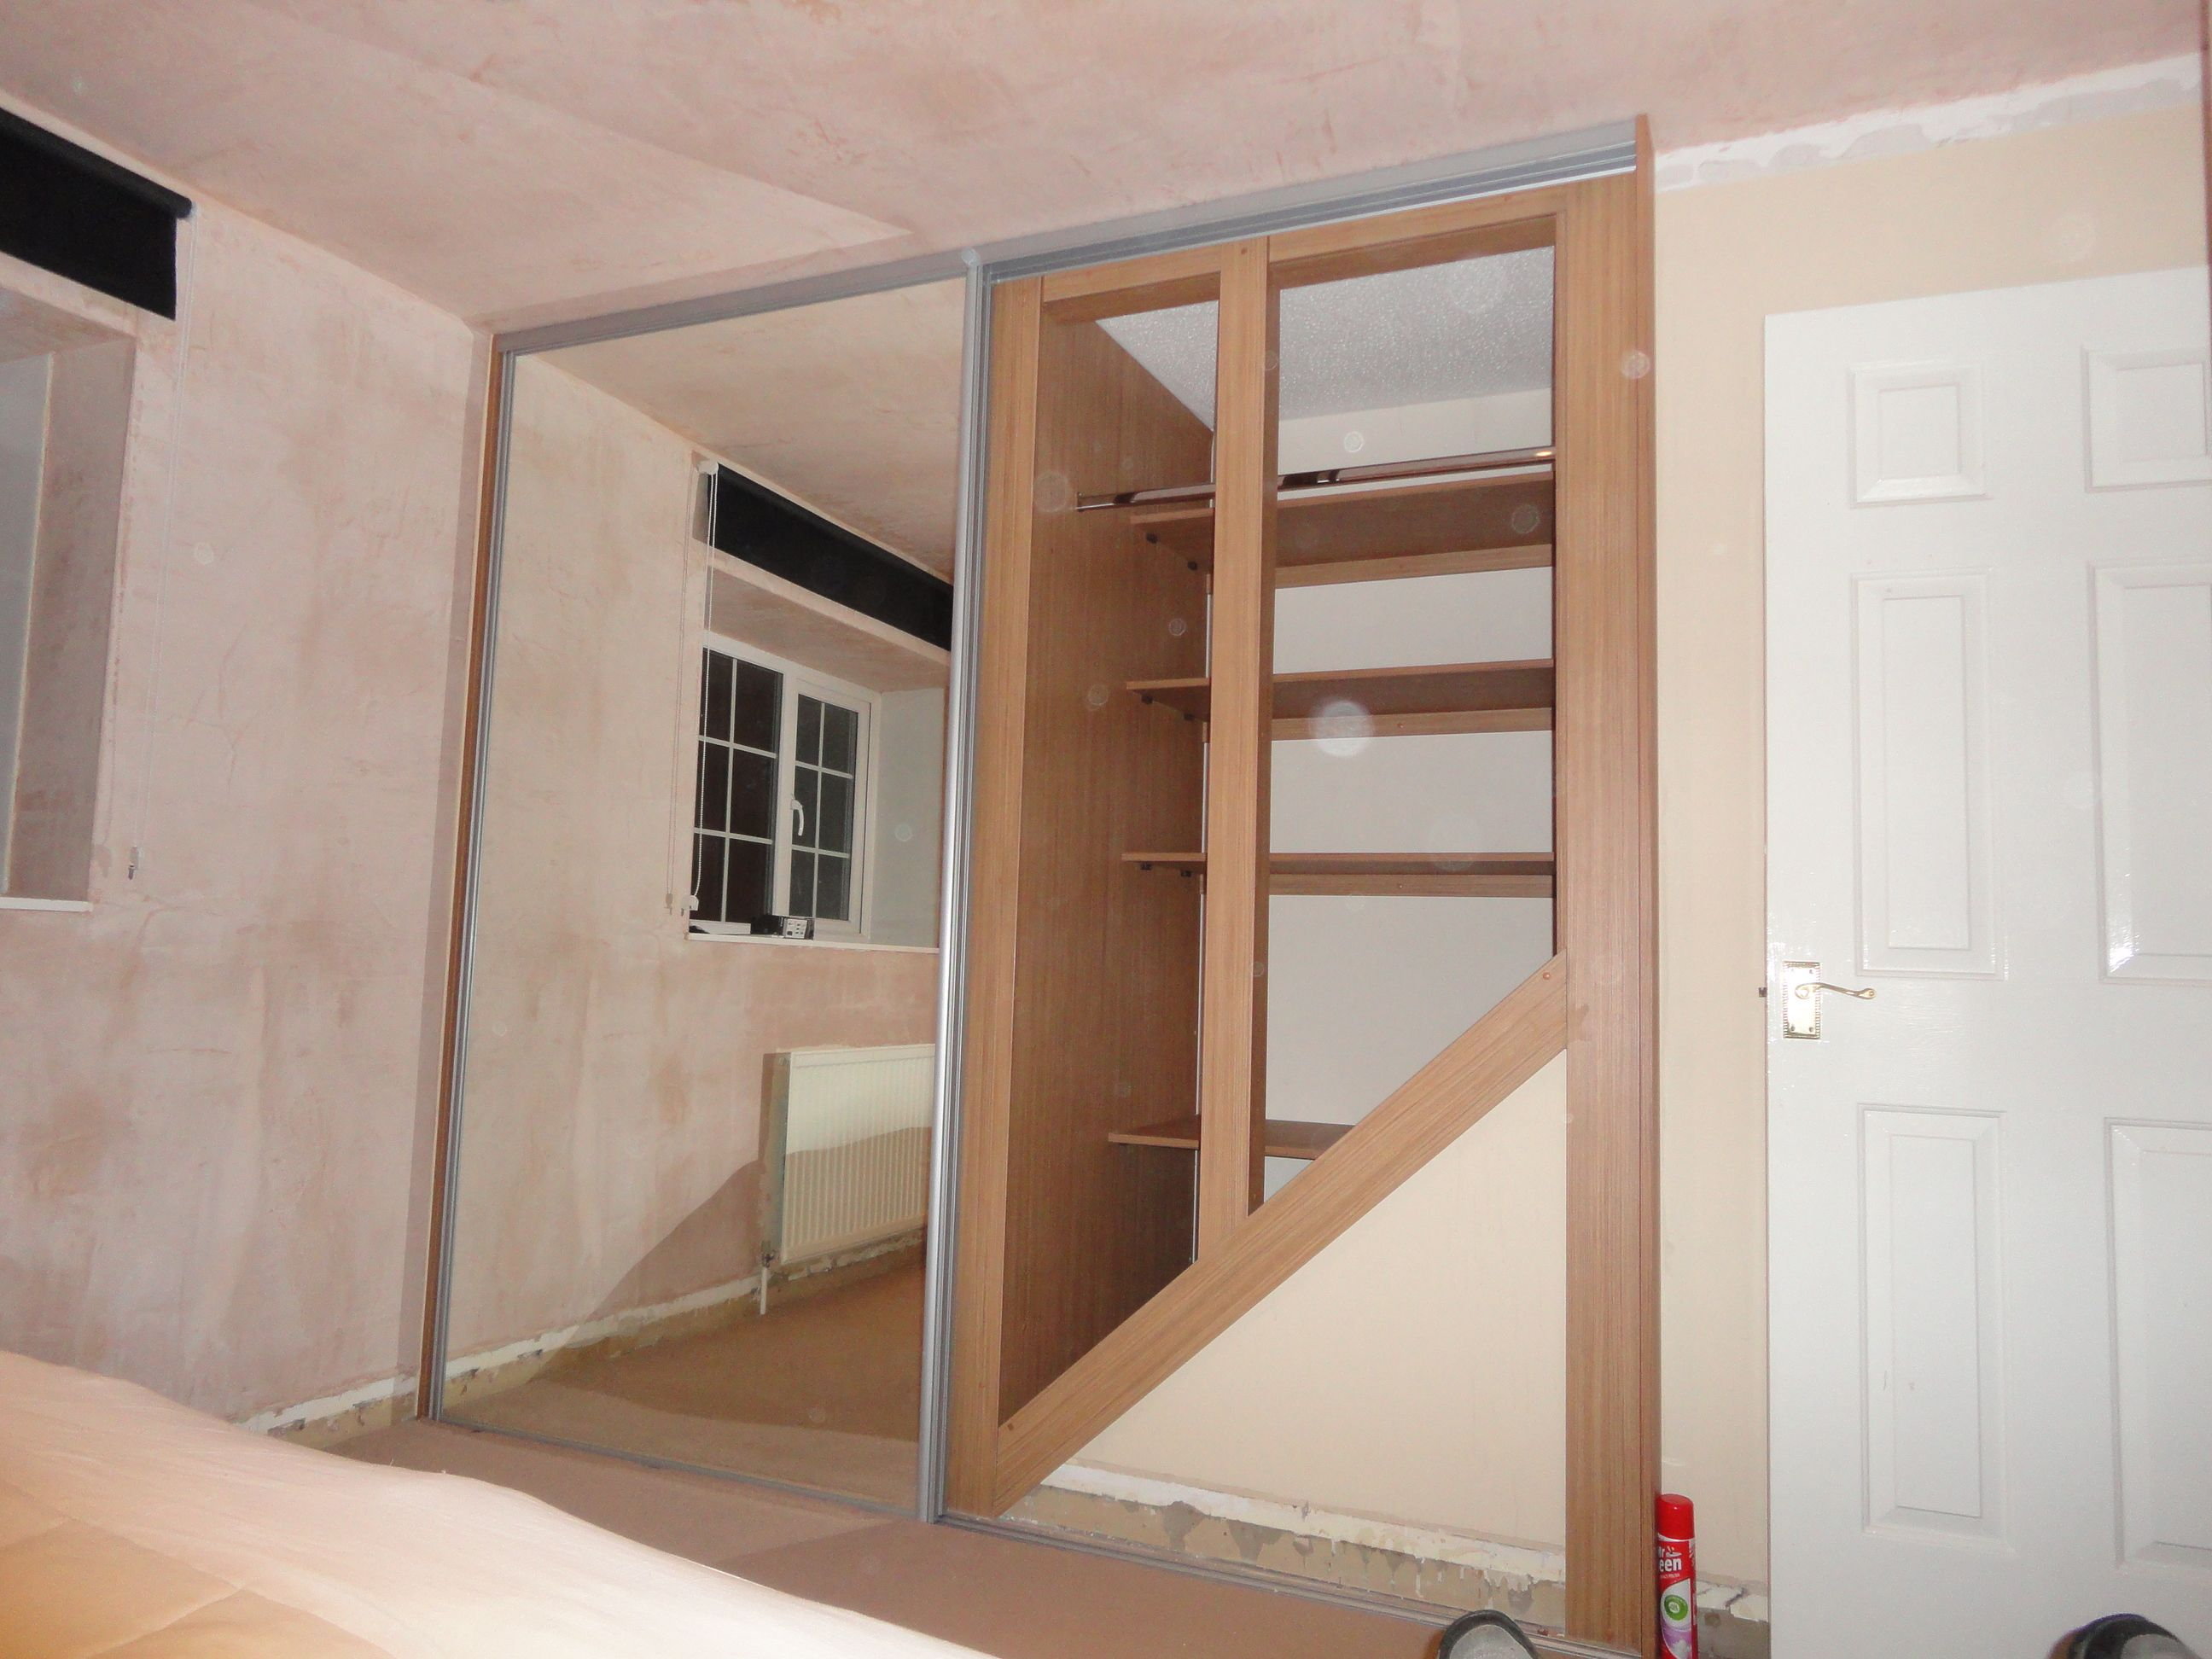 Bed Over Stair Box With Storage And Stairs: Image Result For Built In Wardrobes Box Room